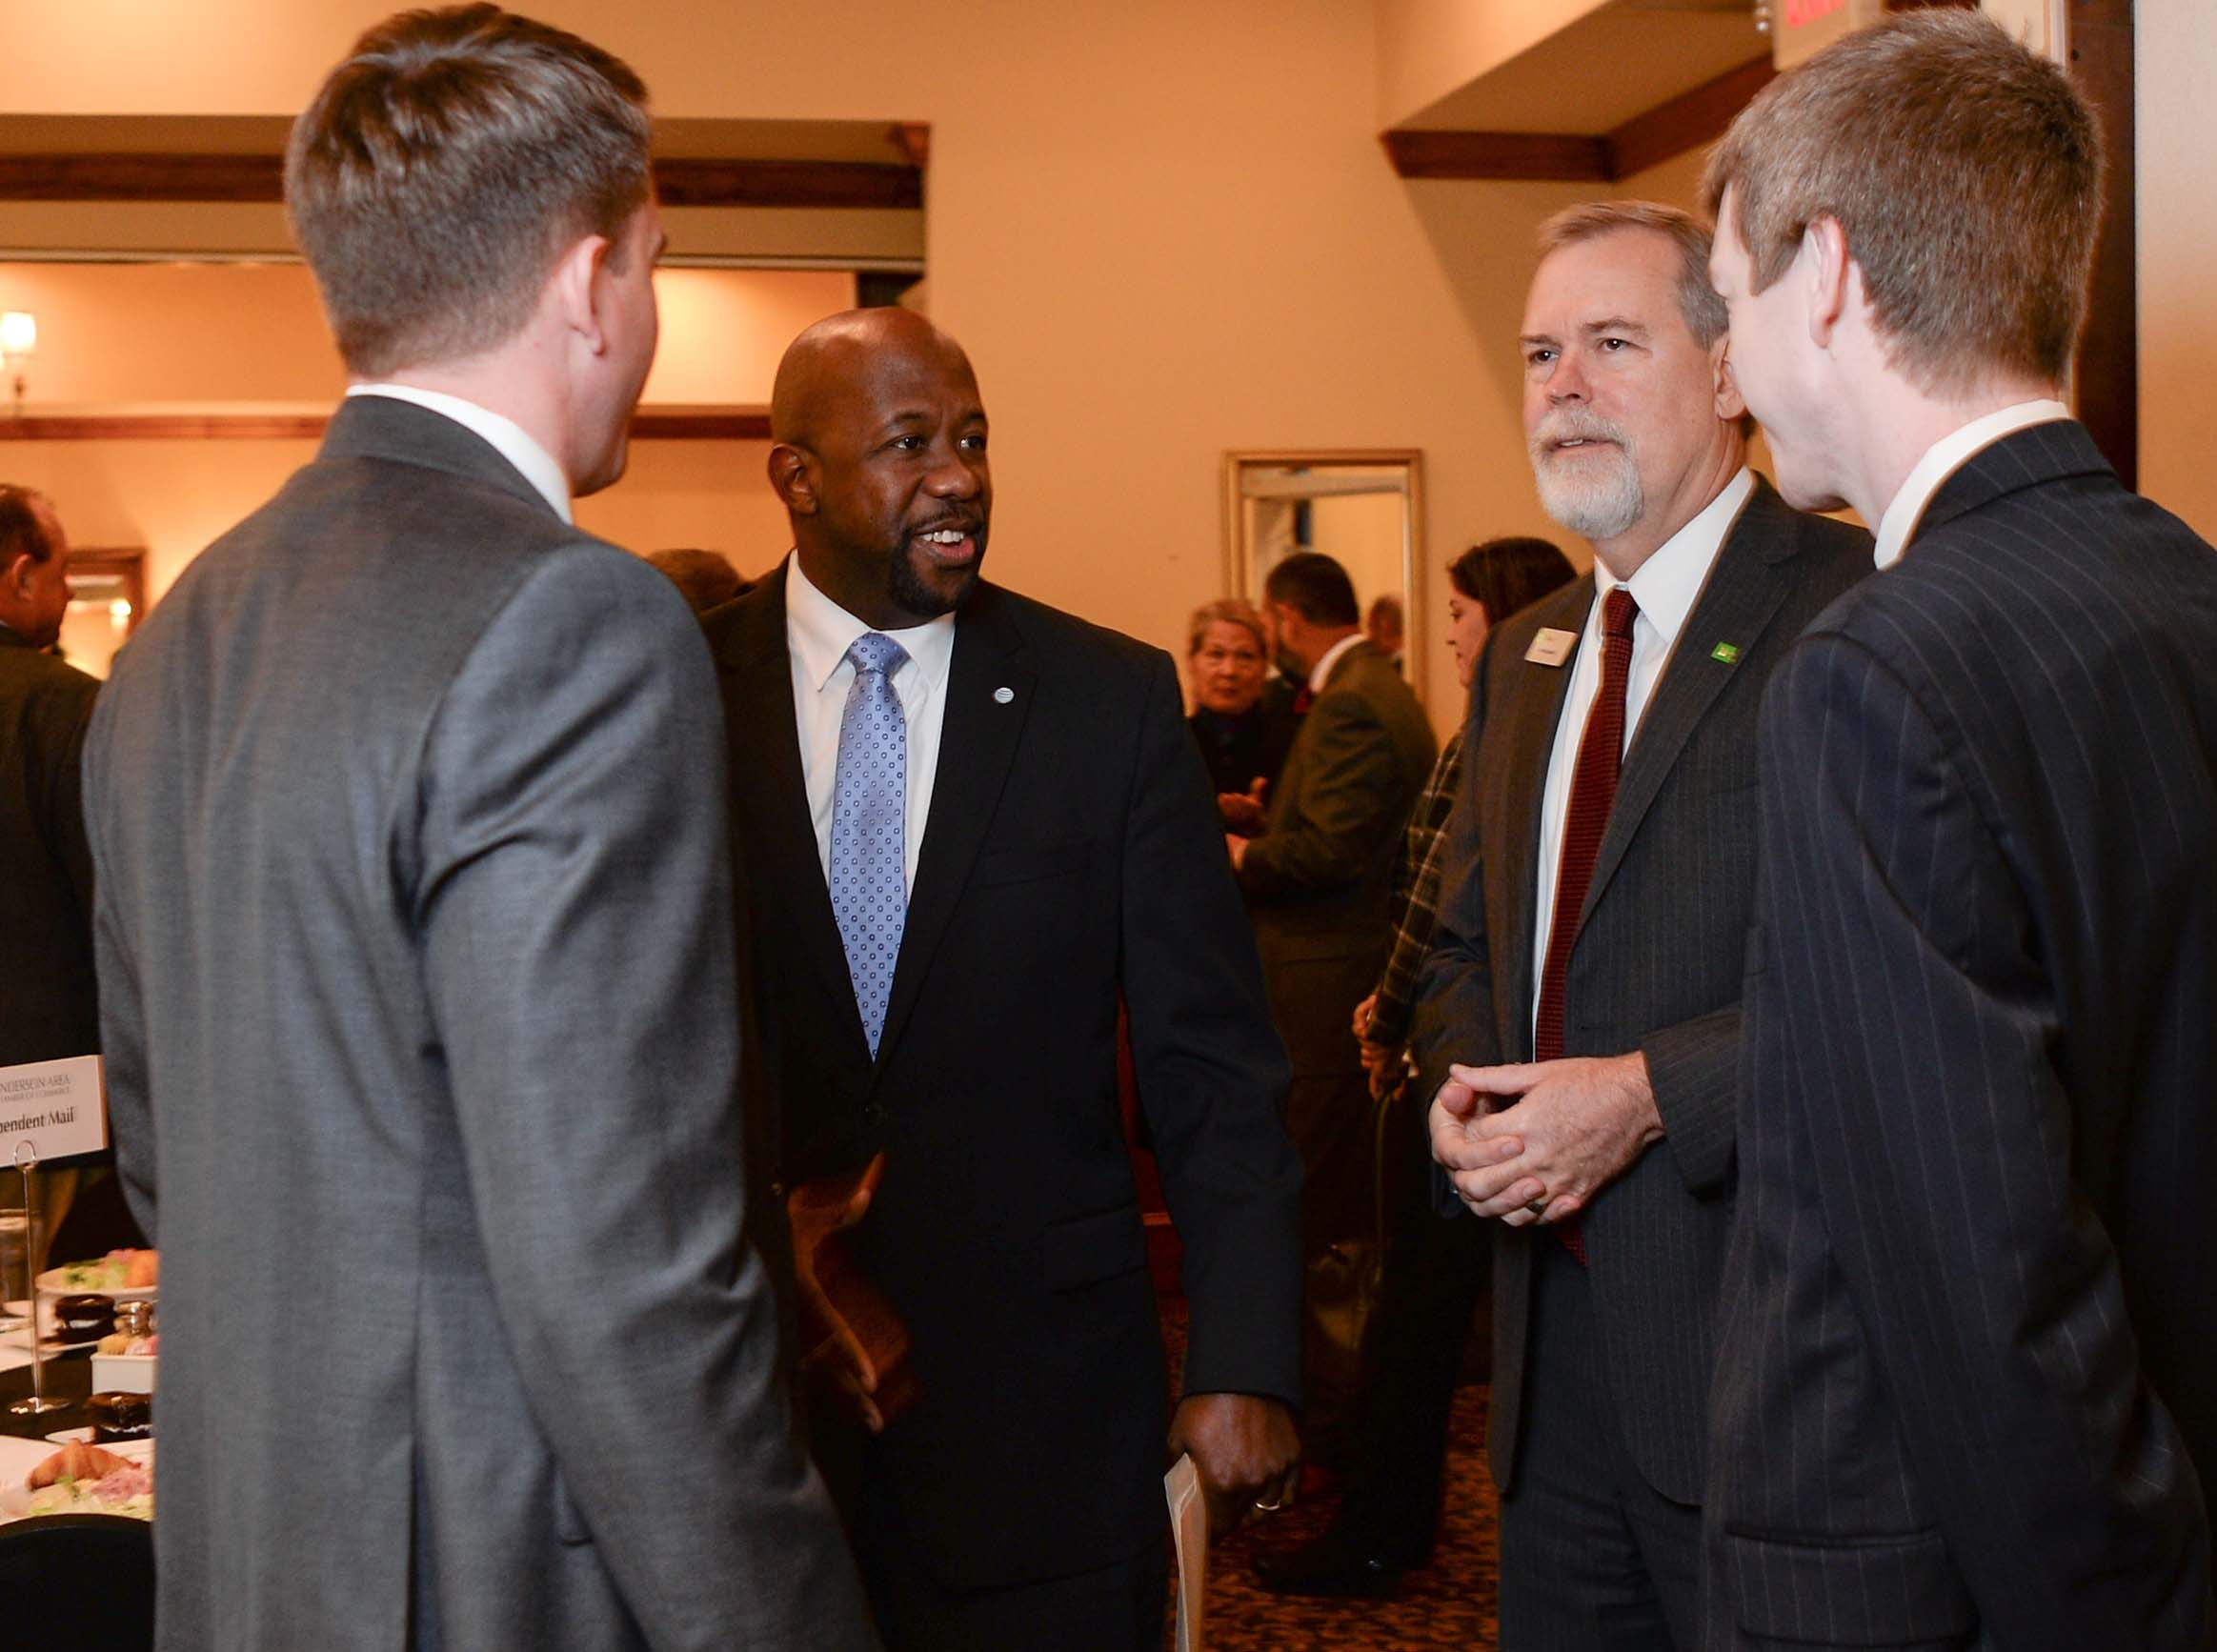 Terrance Ford, middle left, AT&T Director of Legislative Affairs, talks with others before presenting State Rep. Brian White the 2017-2018 Business Champion Award from the Anderson Area Chamber of Commerce at the chamber lunch at Tucker's in Anderson Thursday, December 13, 2018.